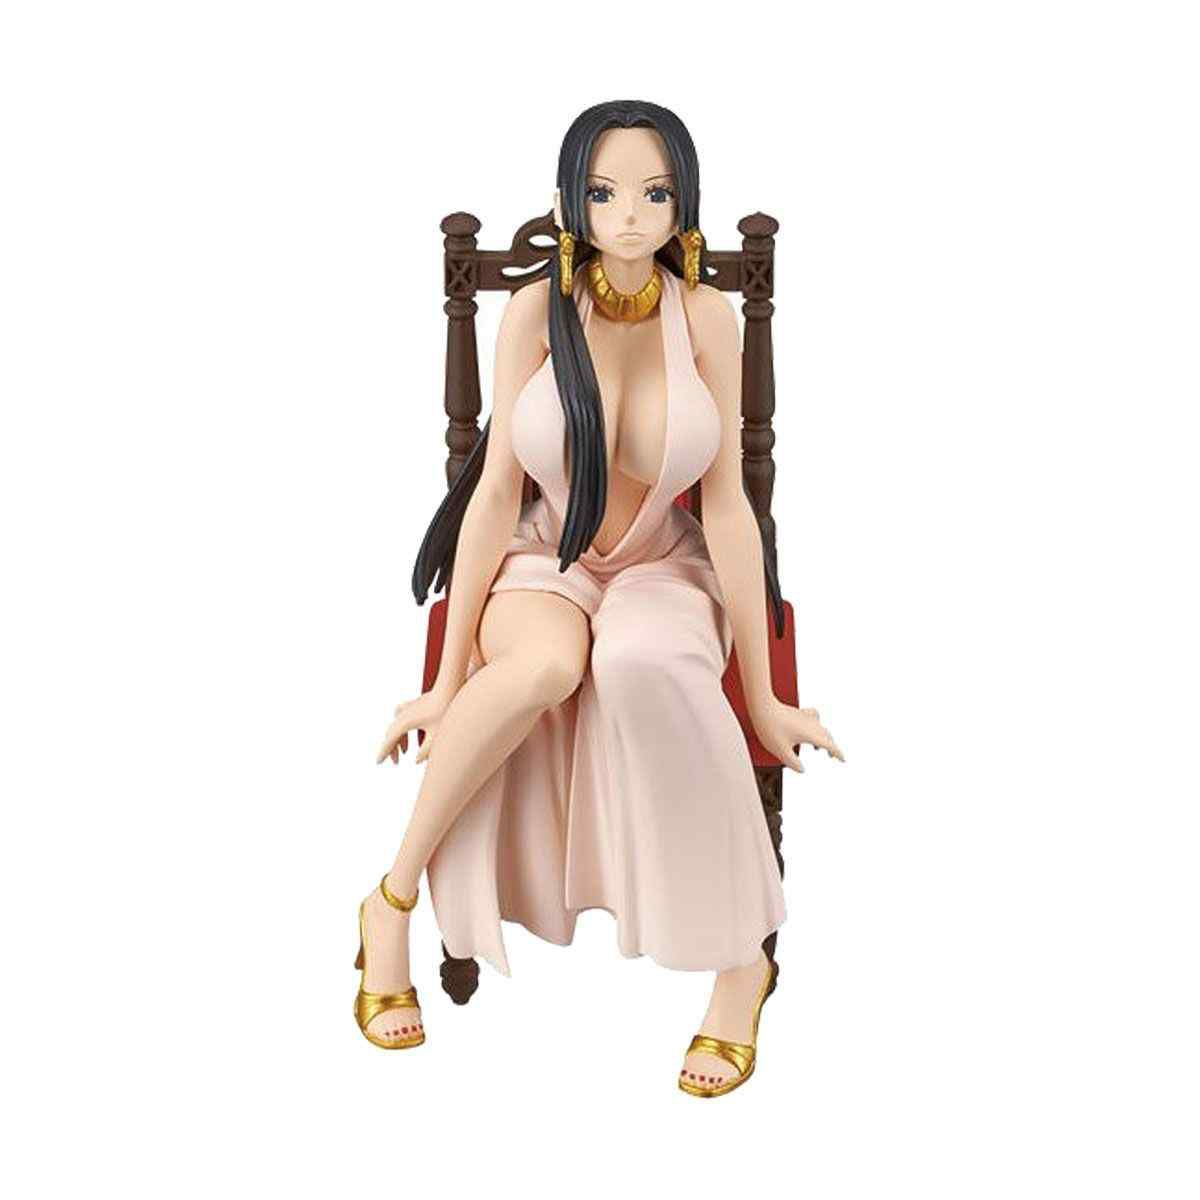 BOA HANCOCK - PINK DRESS - ONE PIECE - BANPRESTO